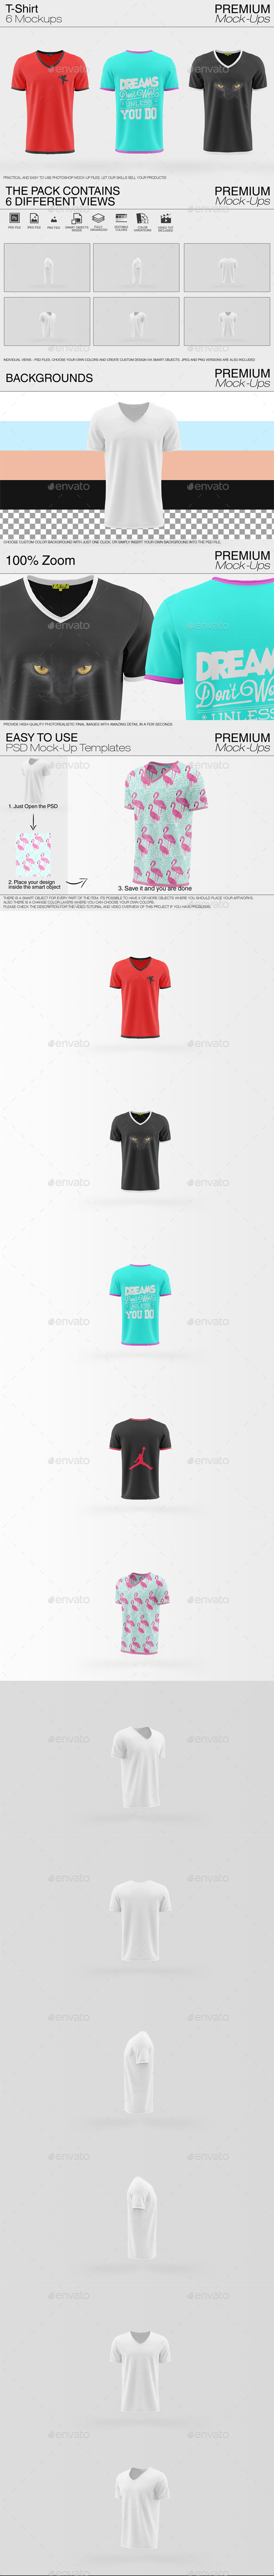 V- Neck T-Shirt Mockup Pack - Print Product Mock-Ups